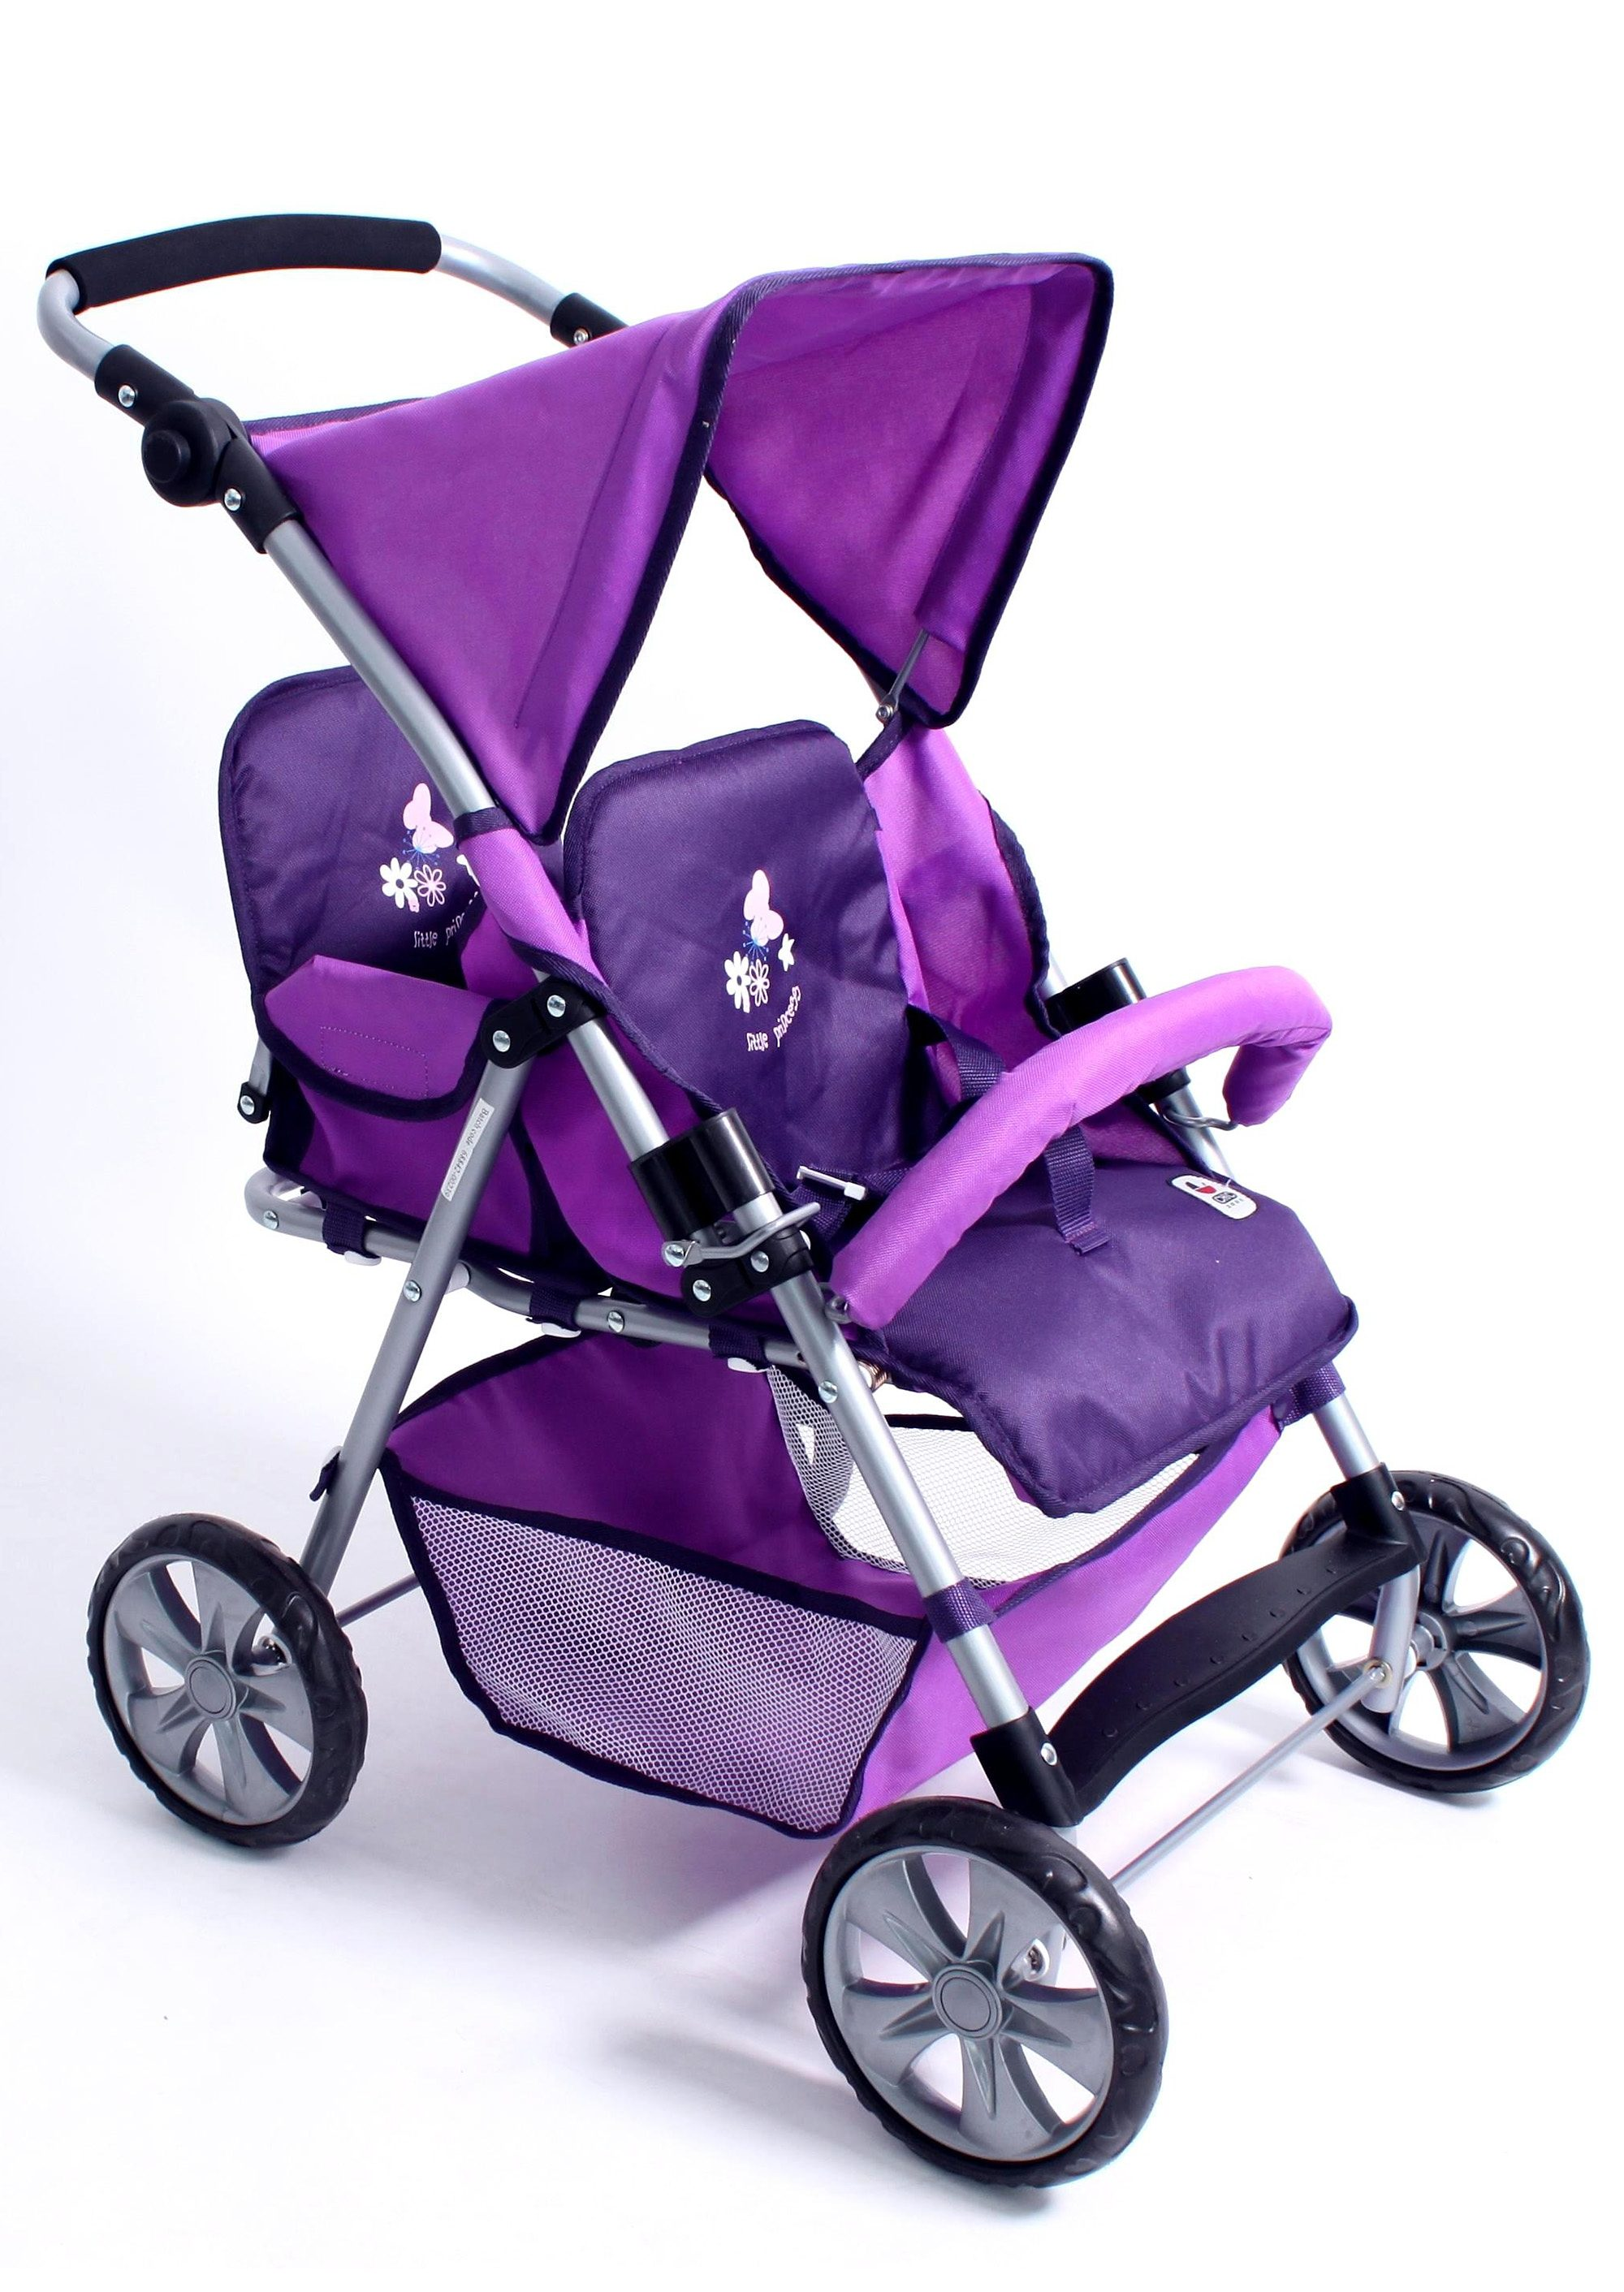 CHIC2000 Zwillings-Puppen-Buggy, »Tandem, Pflaume«